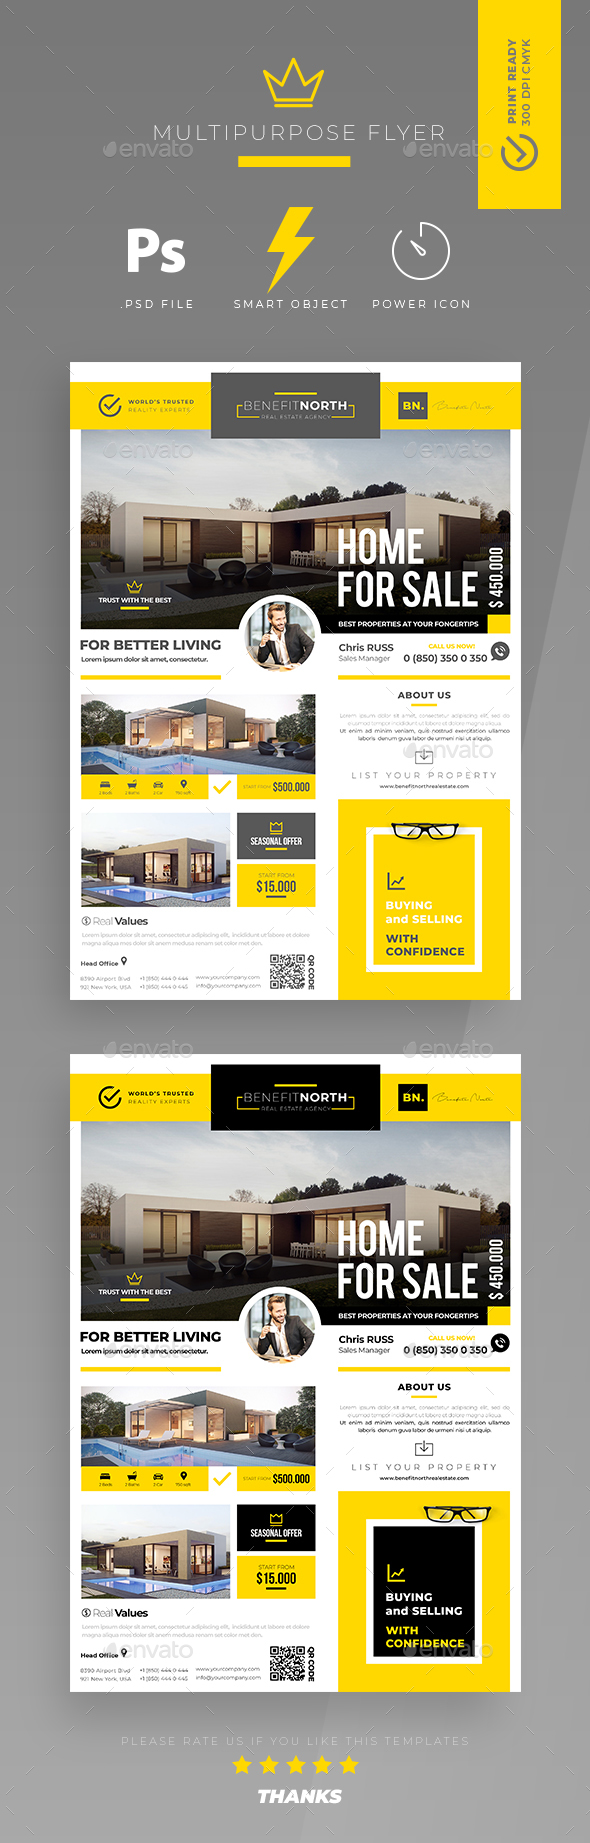 Real Estate Flyer - Print Templates